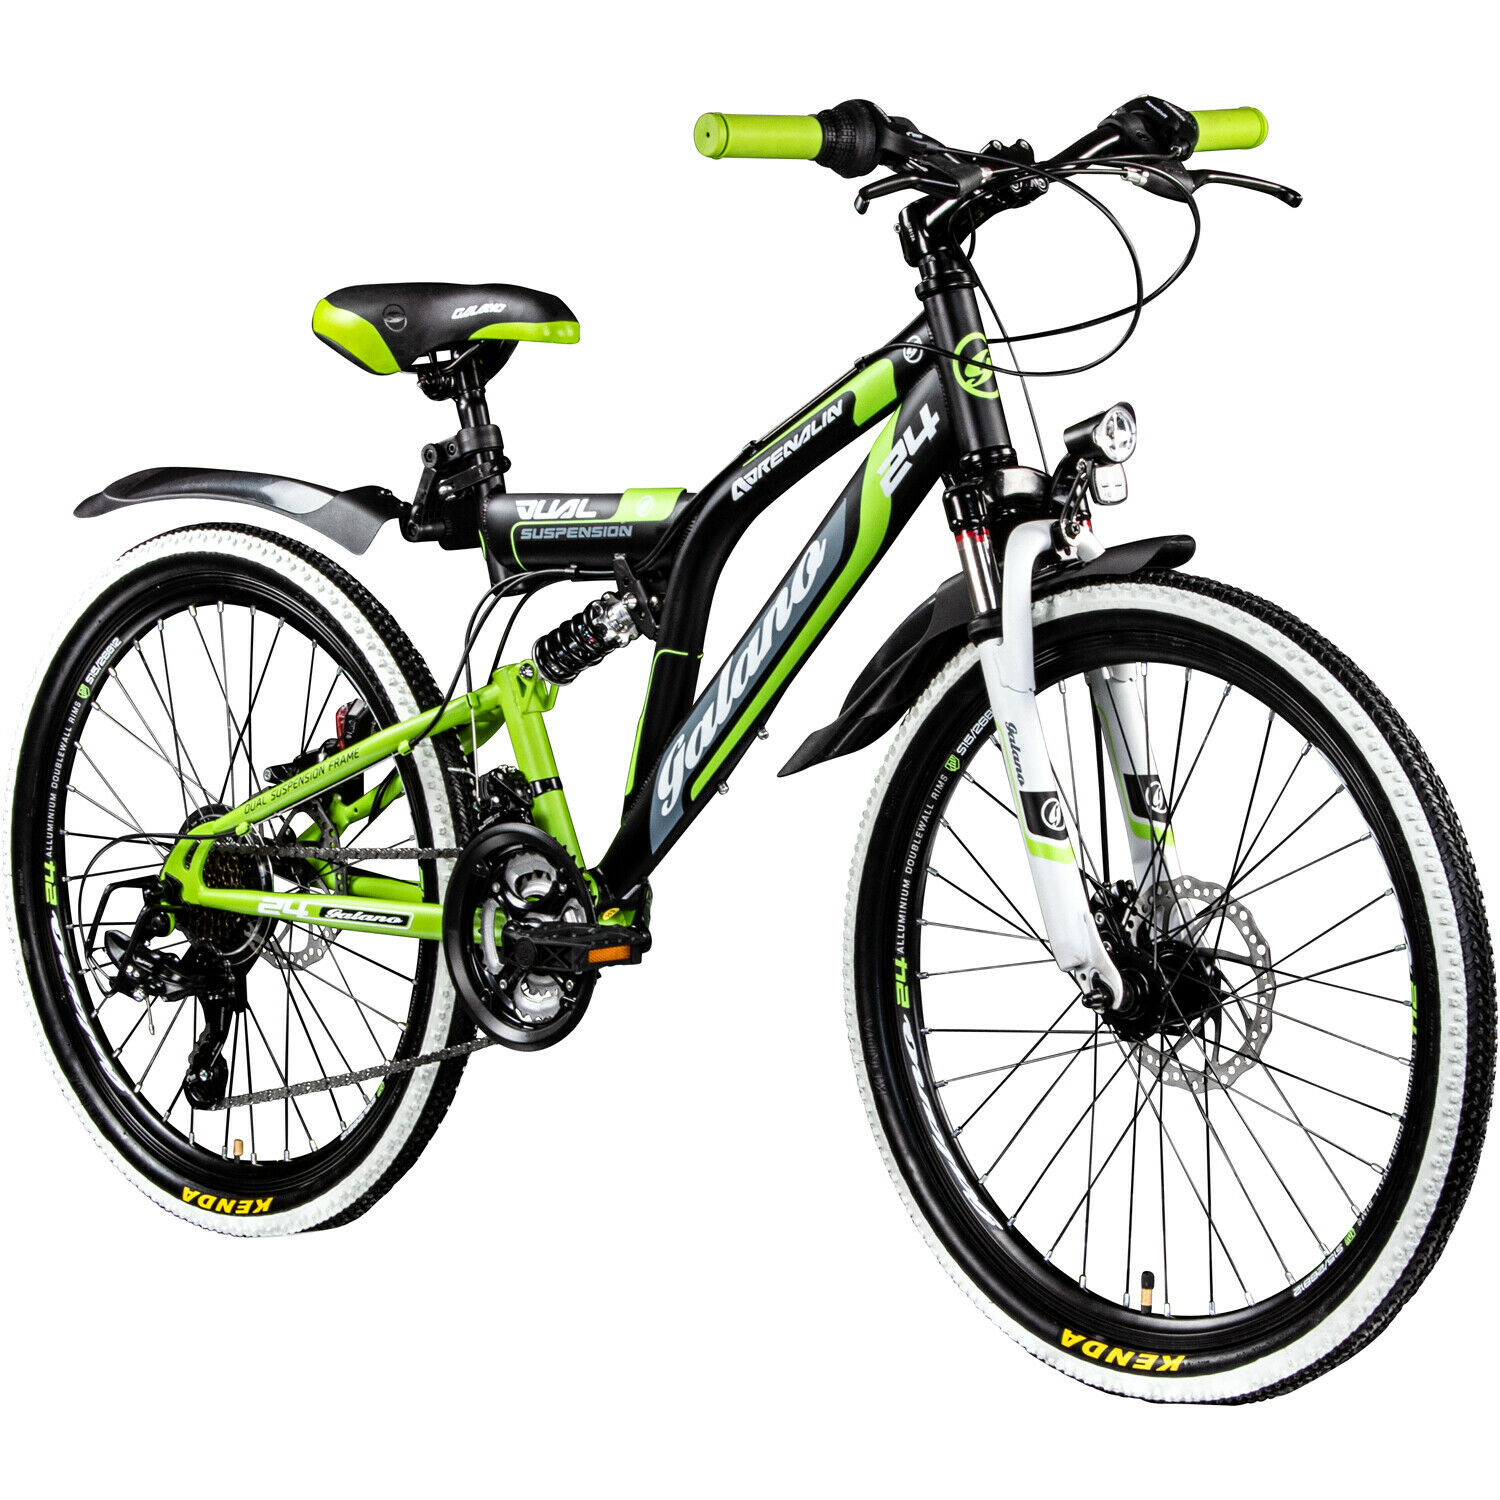 24 zoll mtb fully galano adrenalin ds mountainbike stvzo jugendfahrrad b ware eur 219 00. Black Bedroom Furniture Sets. Home Design Ideas